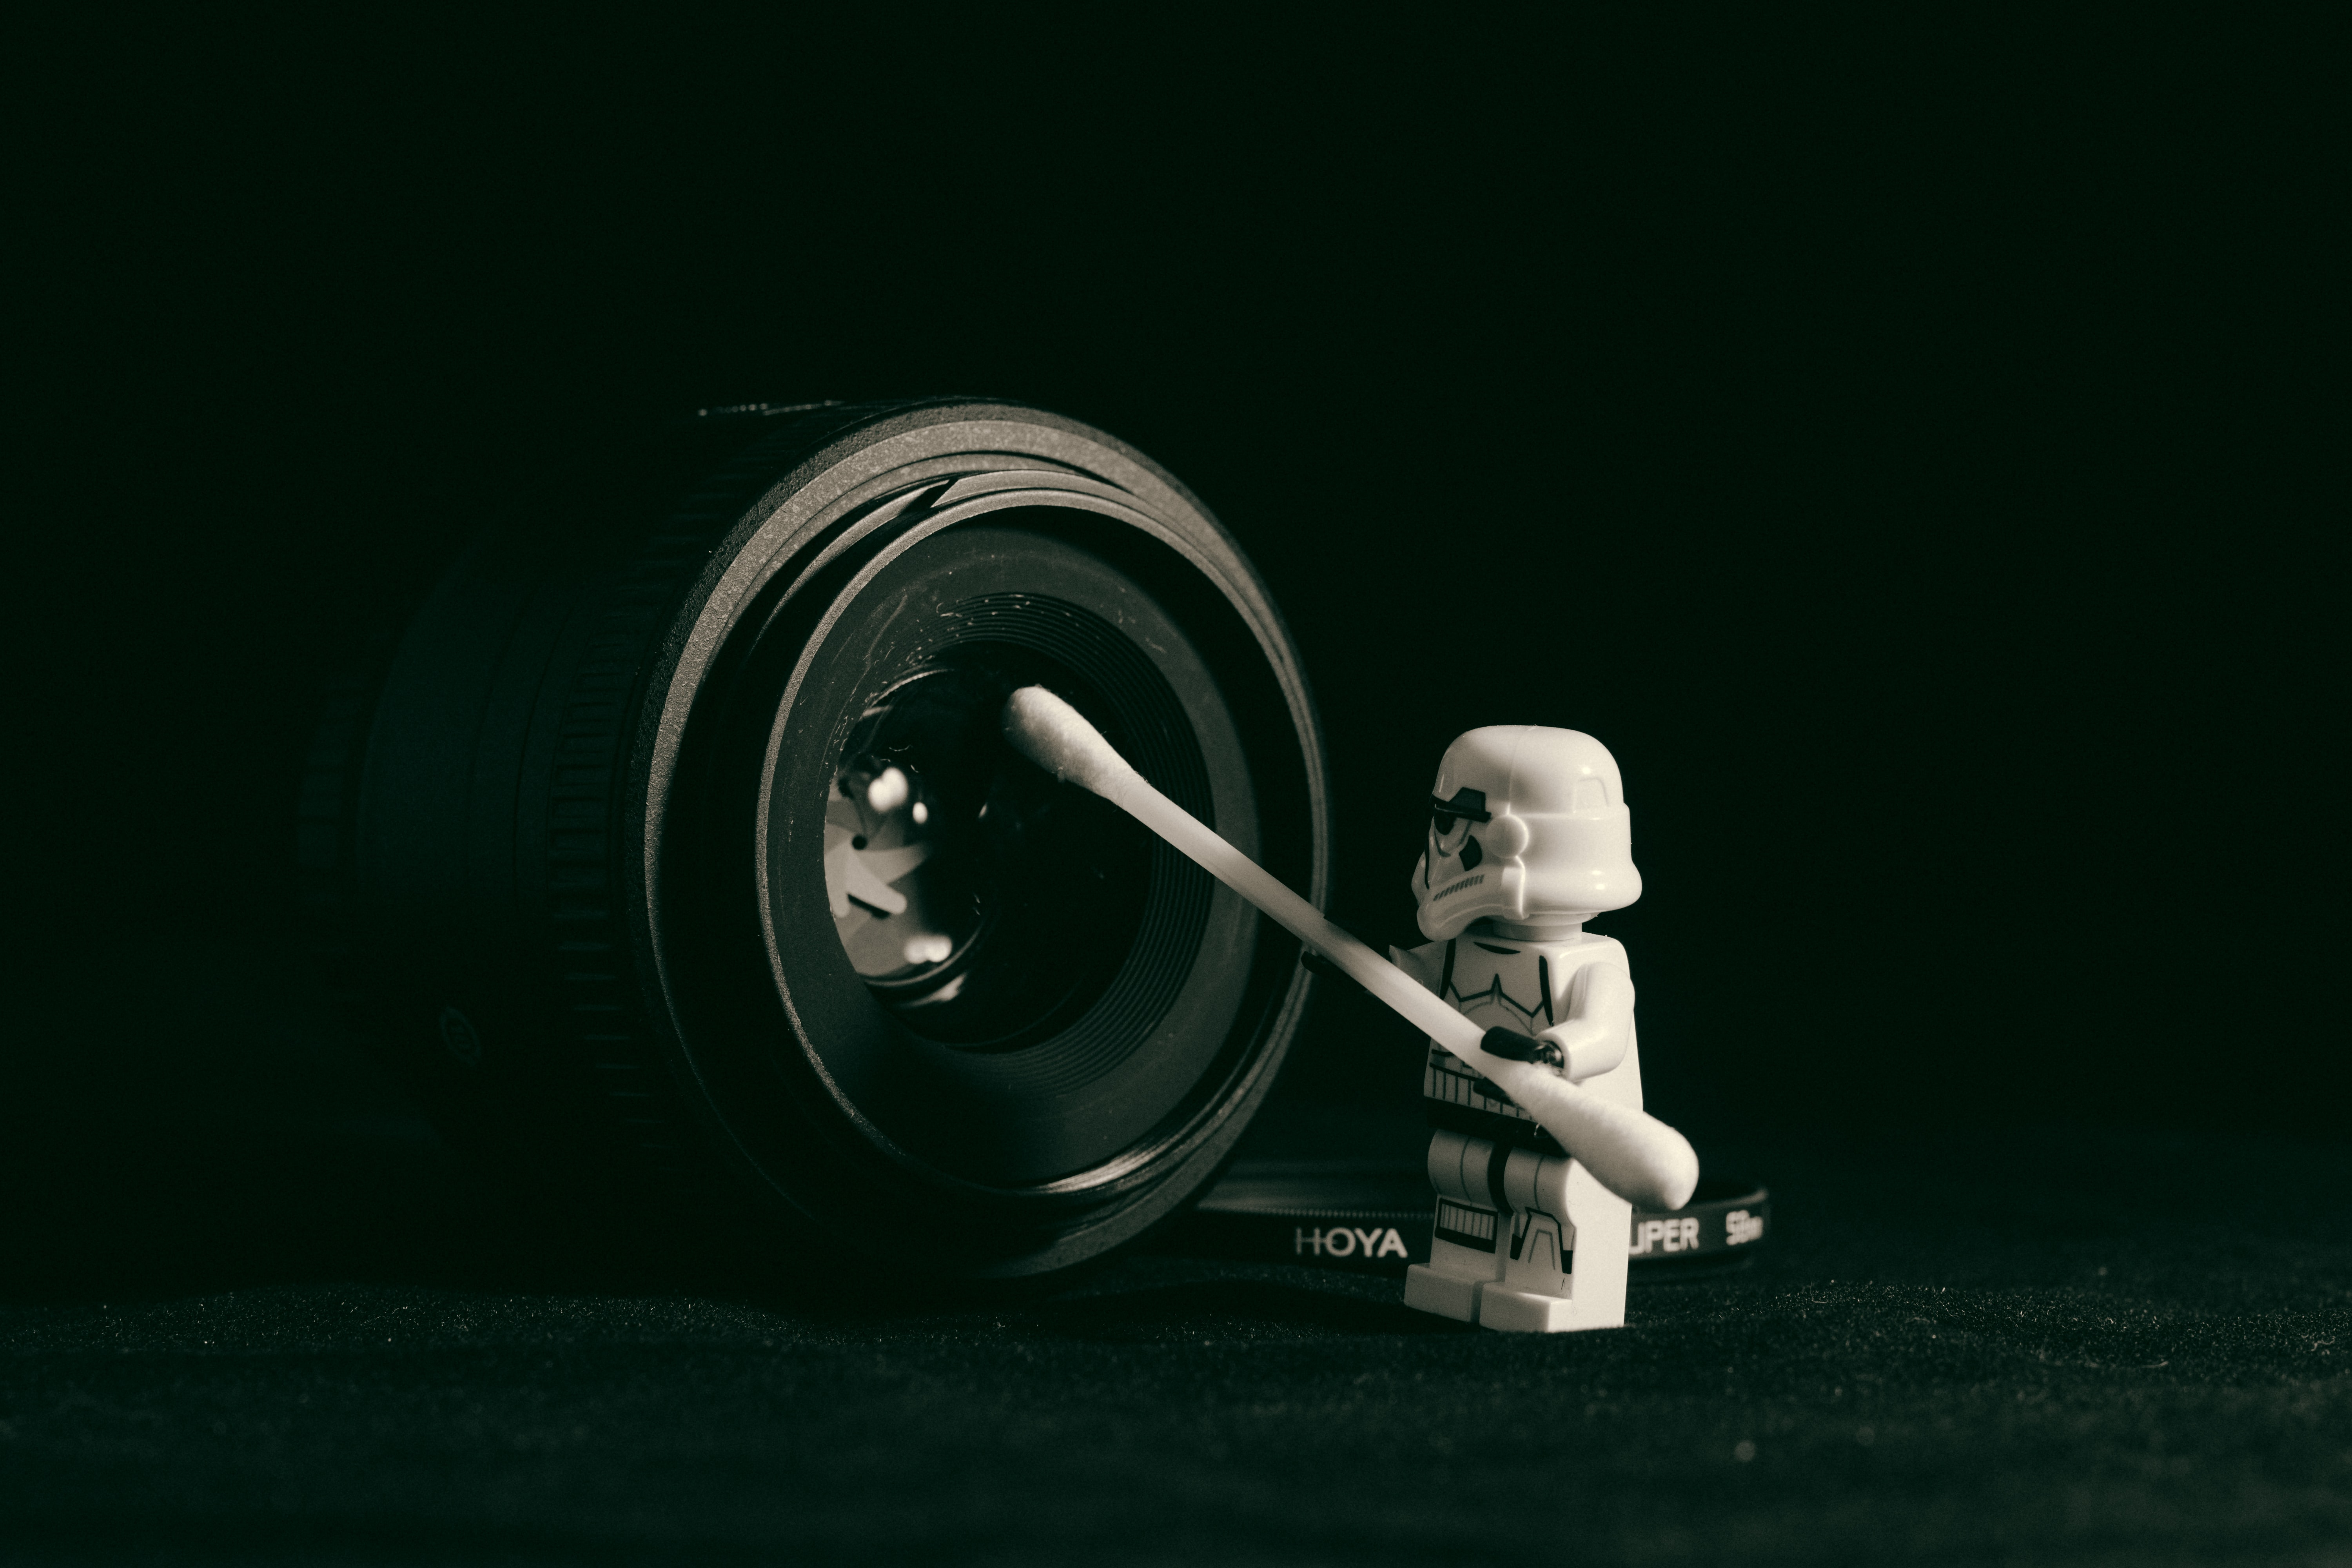 White toy stormtrooper figure with q-tip cleaning black camera lens, Curitiba